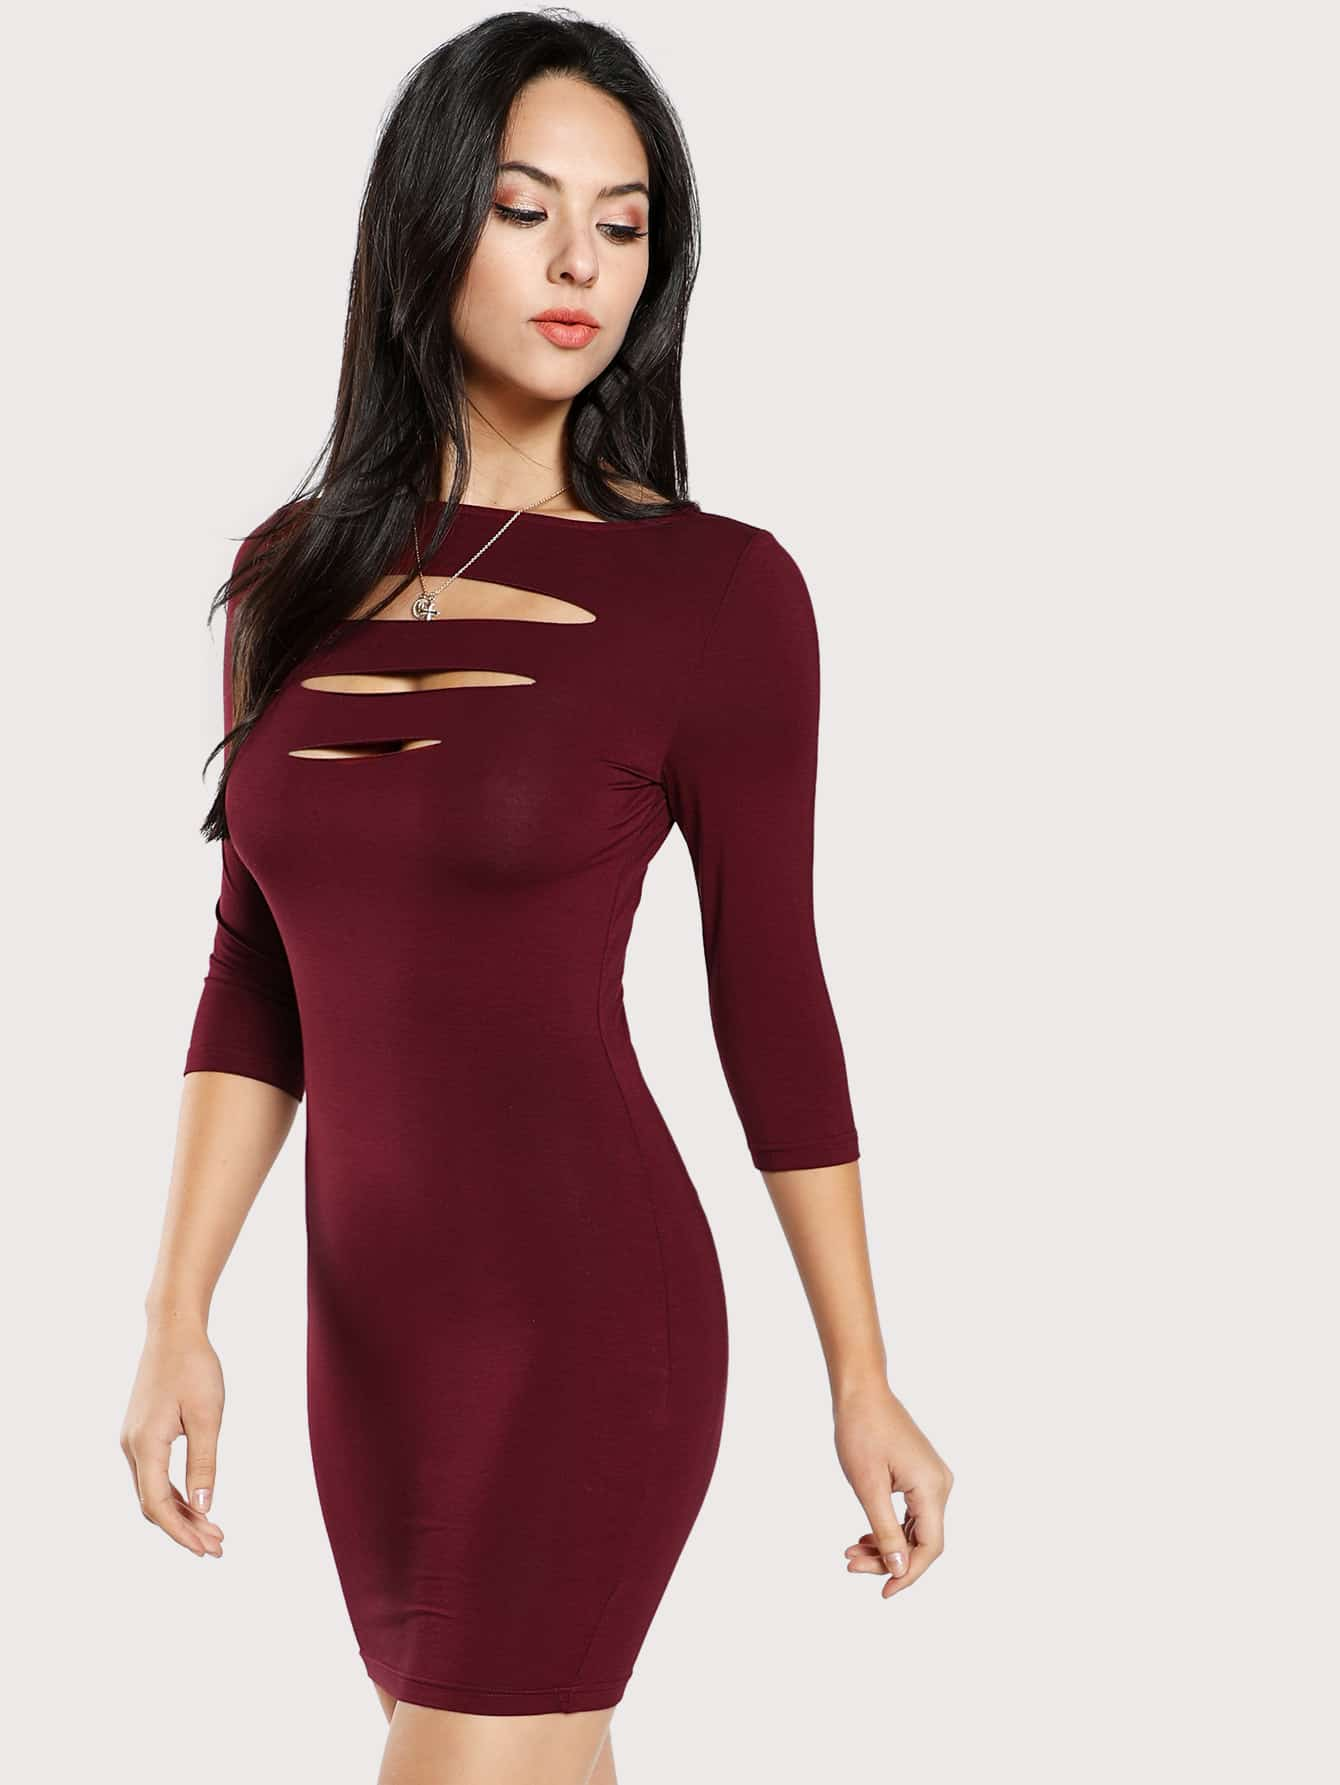 Laddering Cut Out Front Fitted Dress laddering cut side skinny leggings